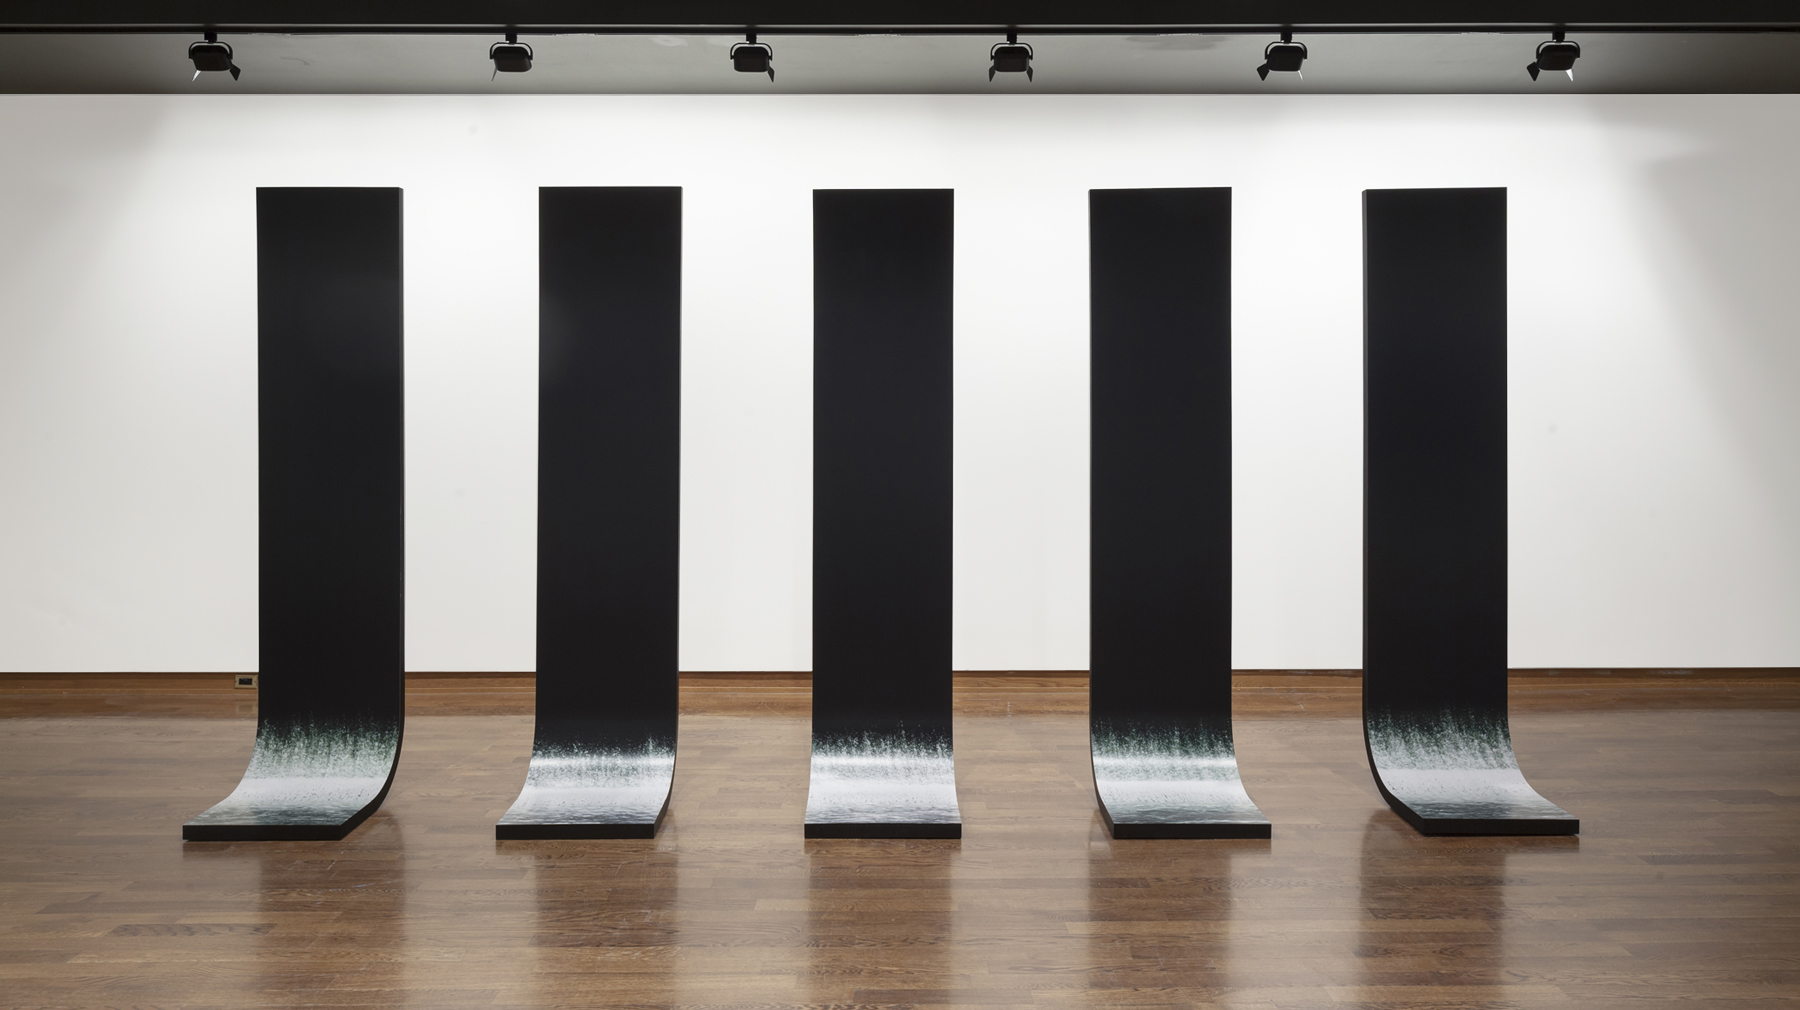 Still Water, 2009, 5 Sculptural Elements, Laminated Plywood, Lambda Prints (227cm x 61cm x 46cm each) Photo: Toni Hafkenscheid